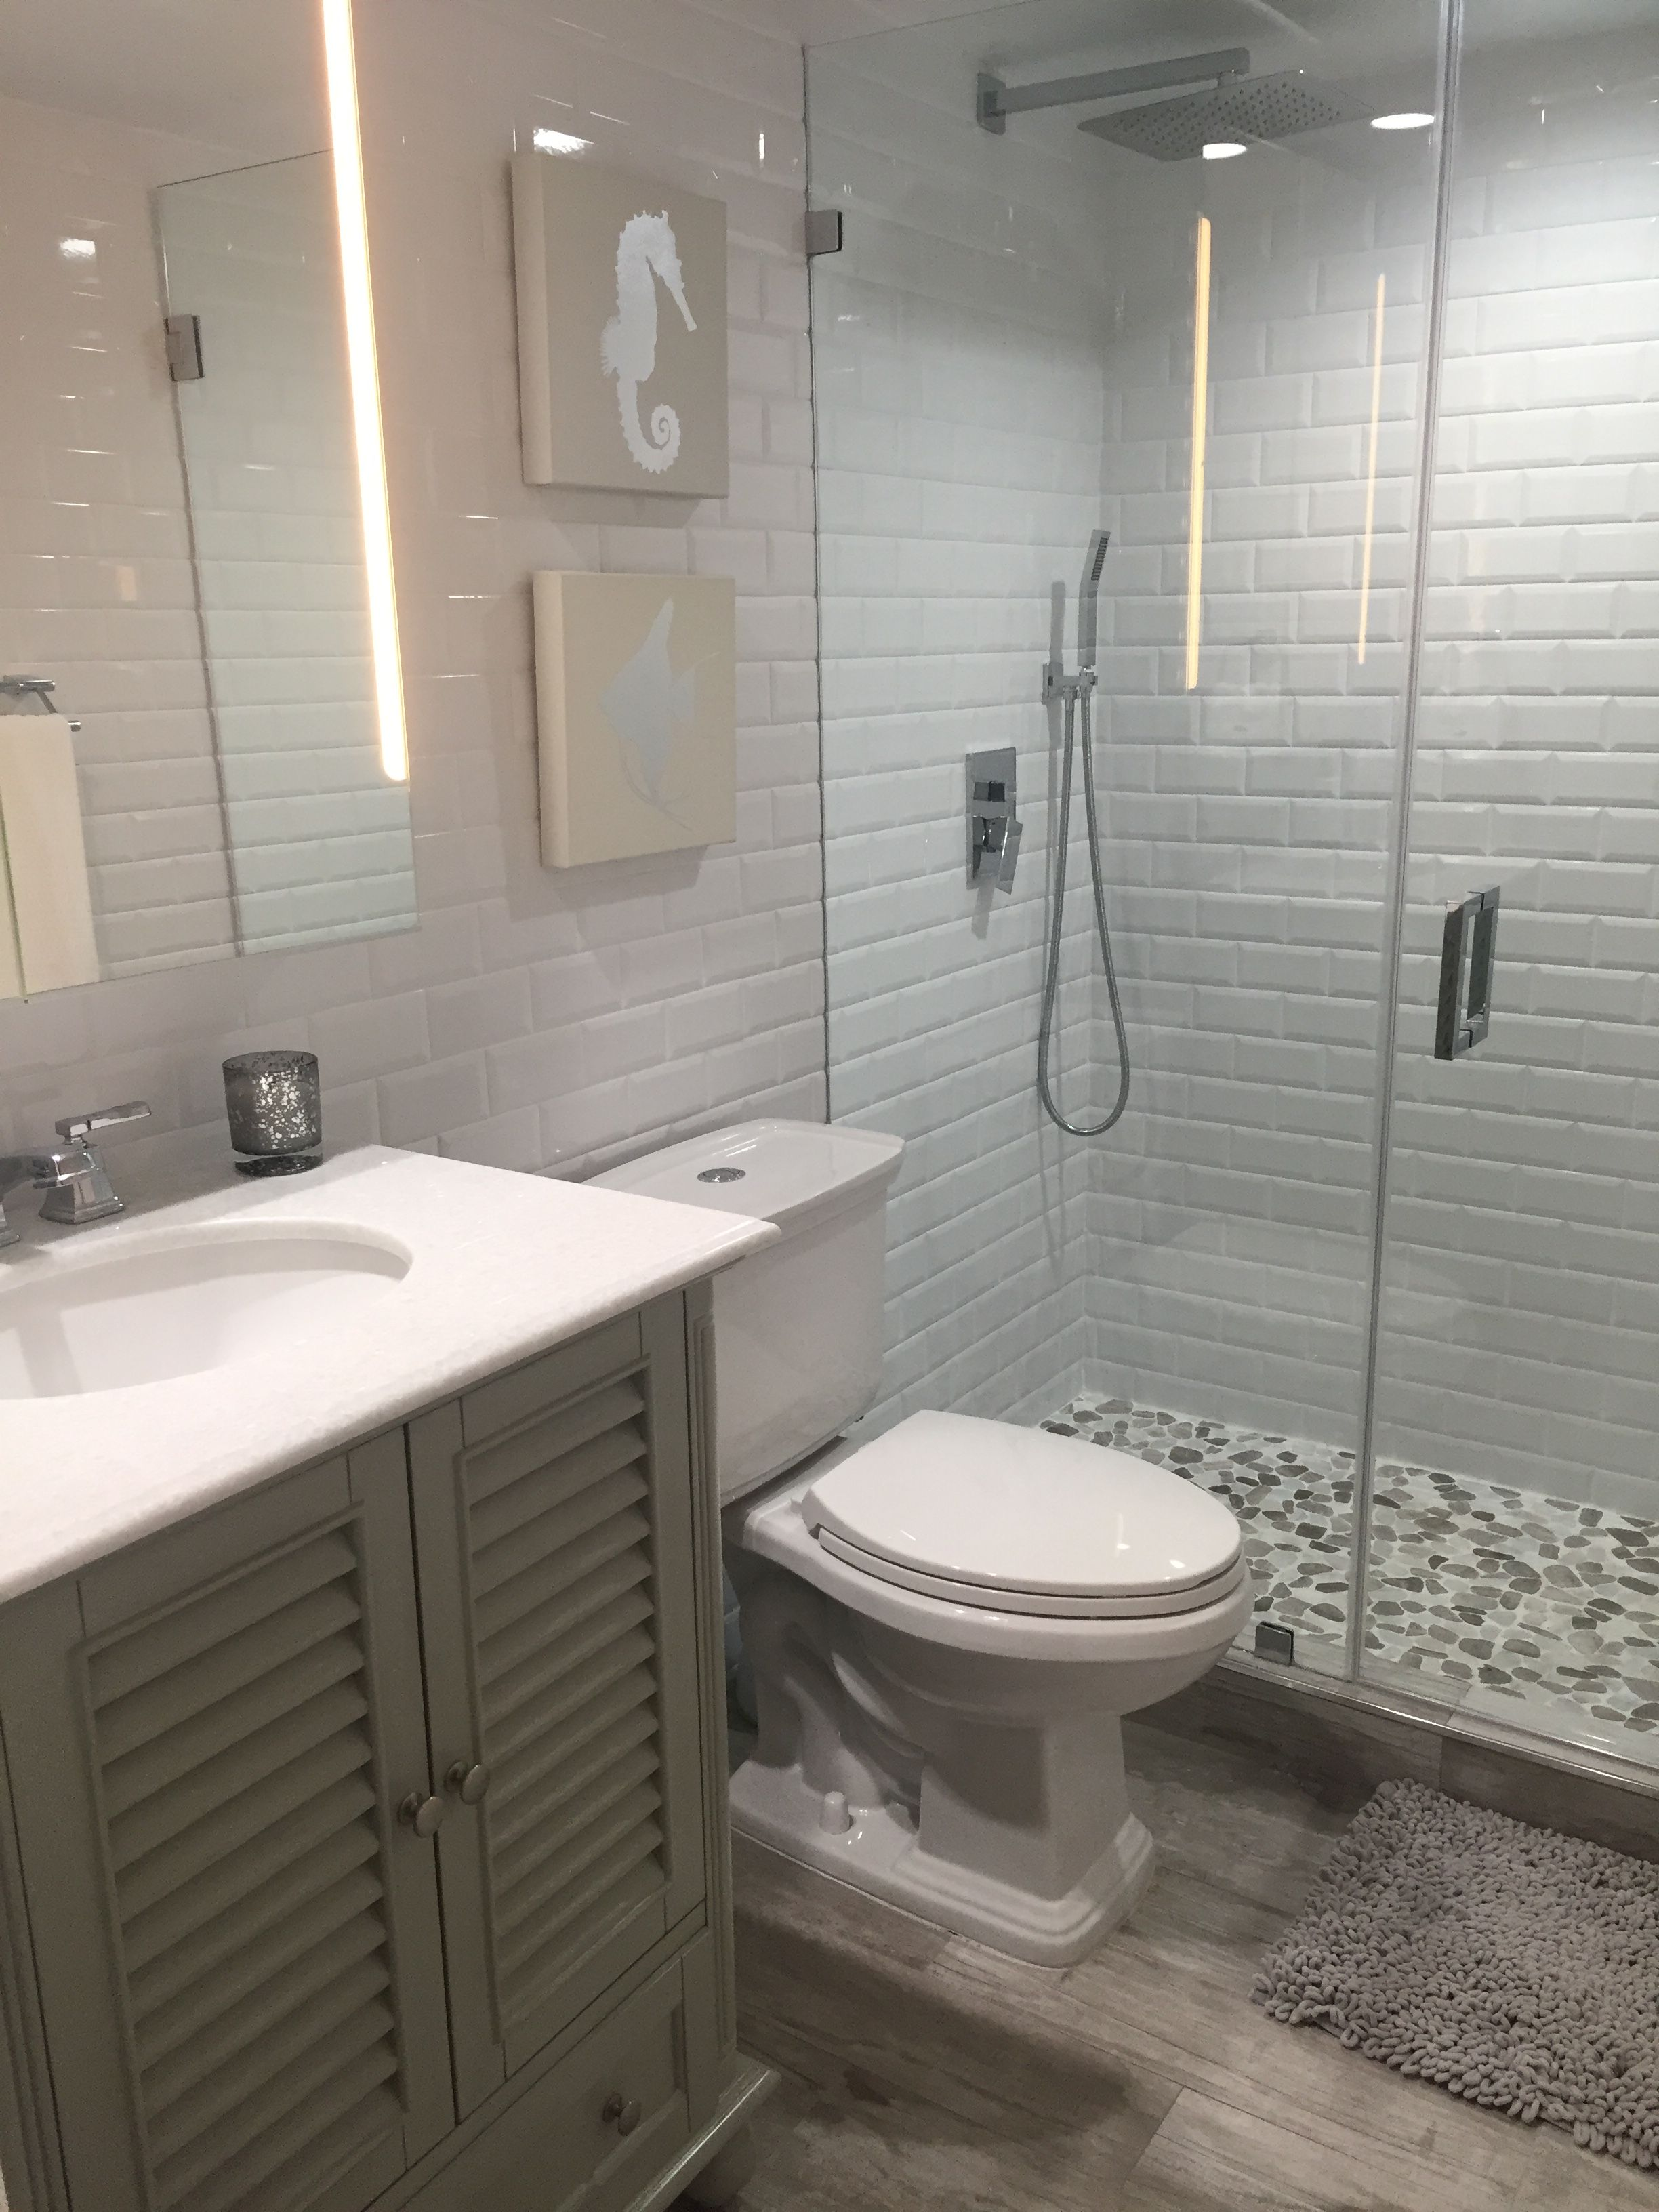 Denver bathroom remodel contractors, Denver bathroom remodeling, Denver bathroom remodeling quote.